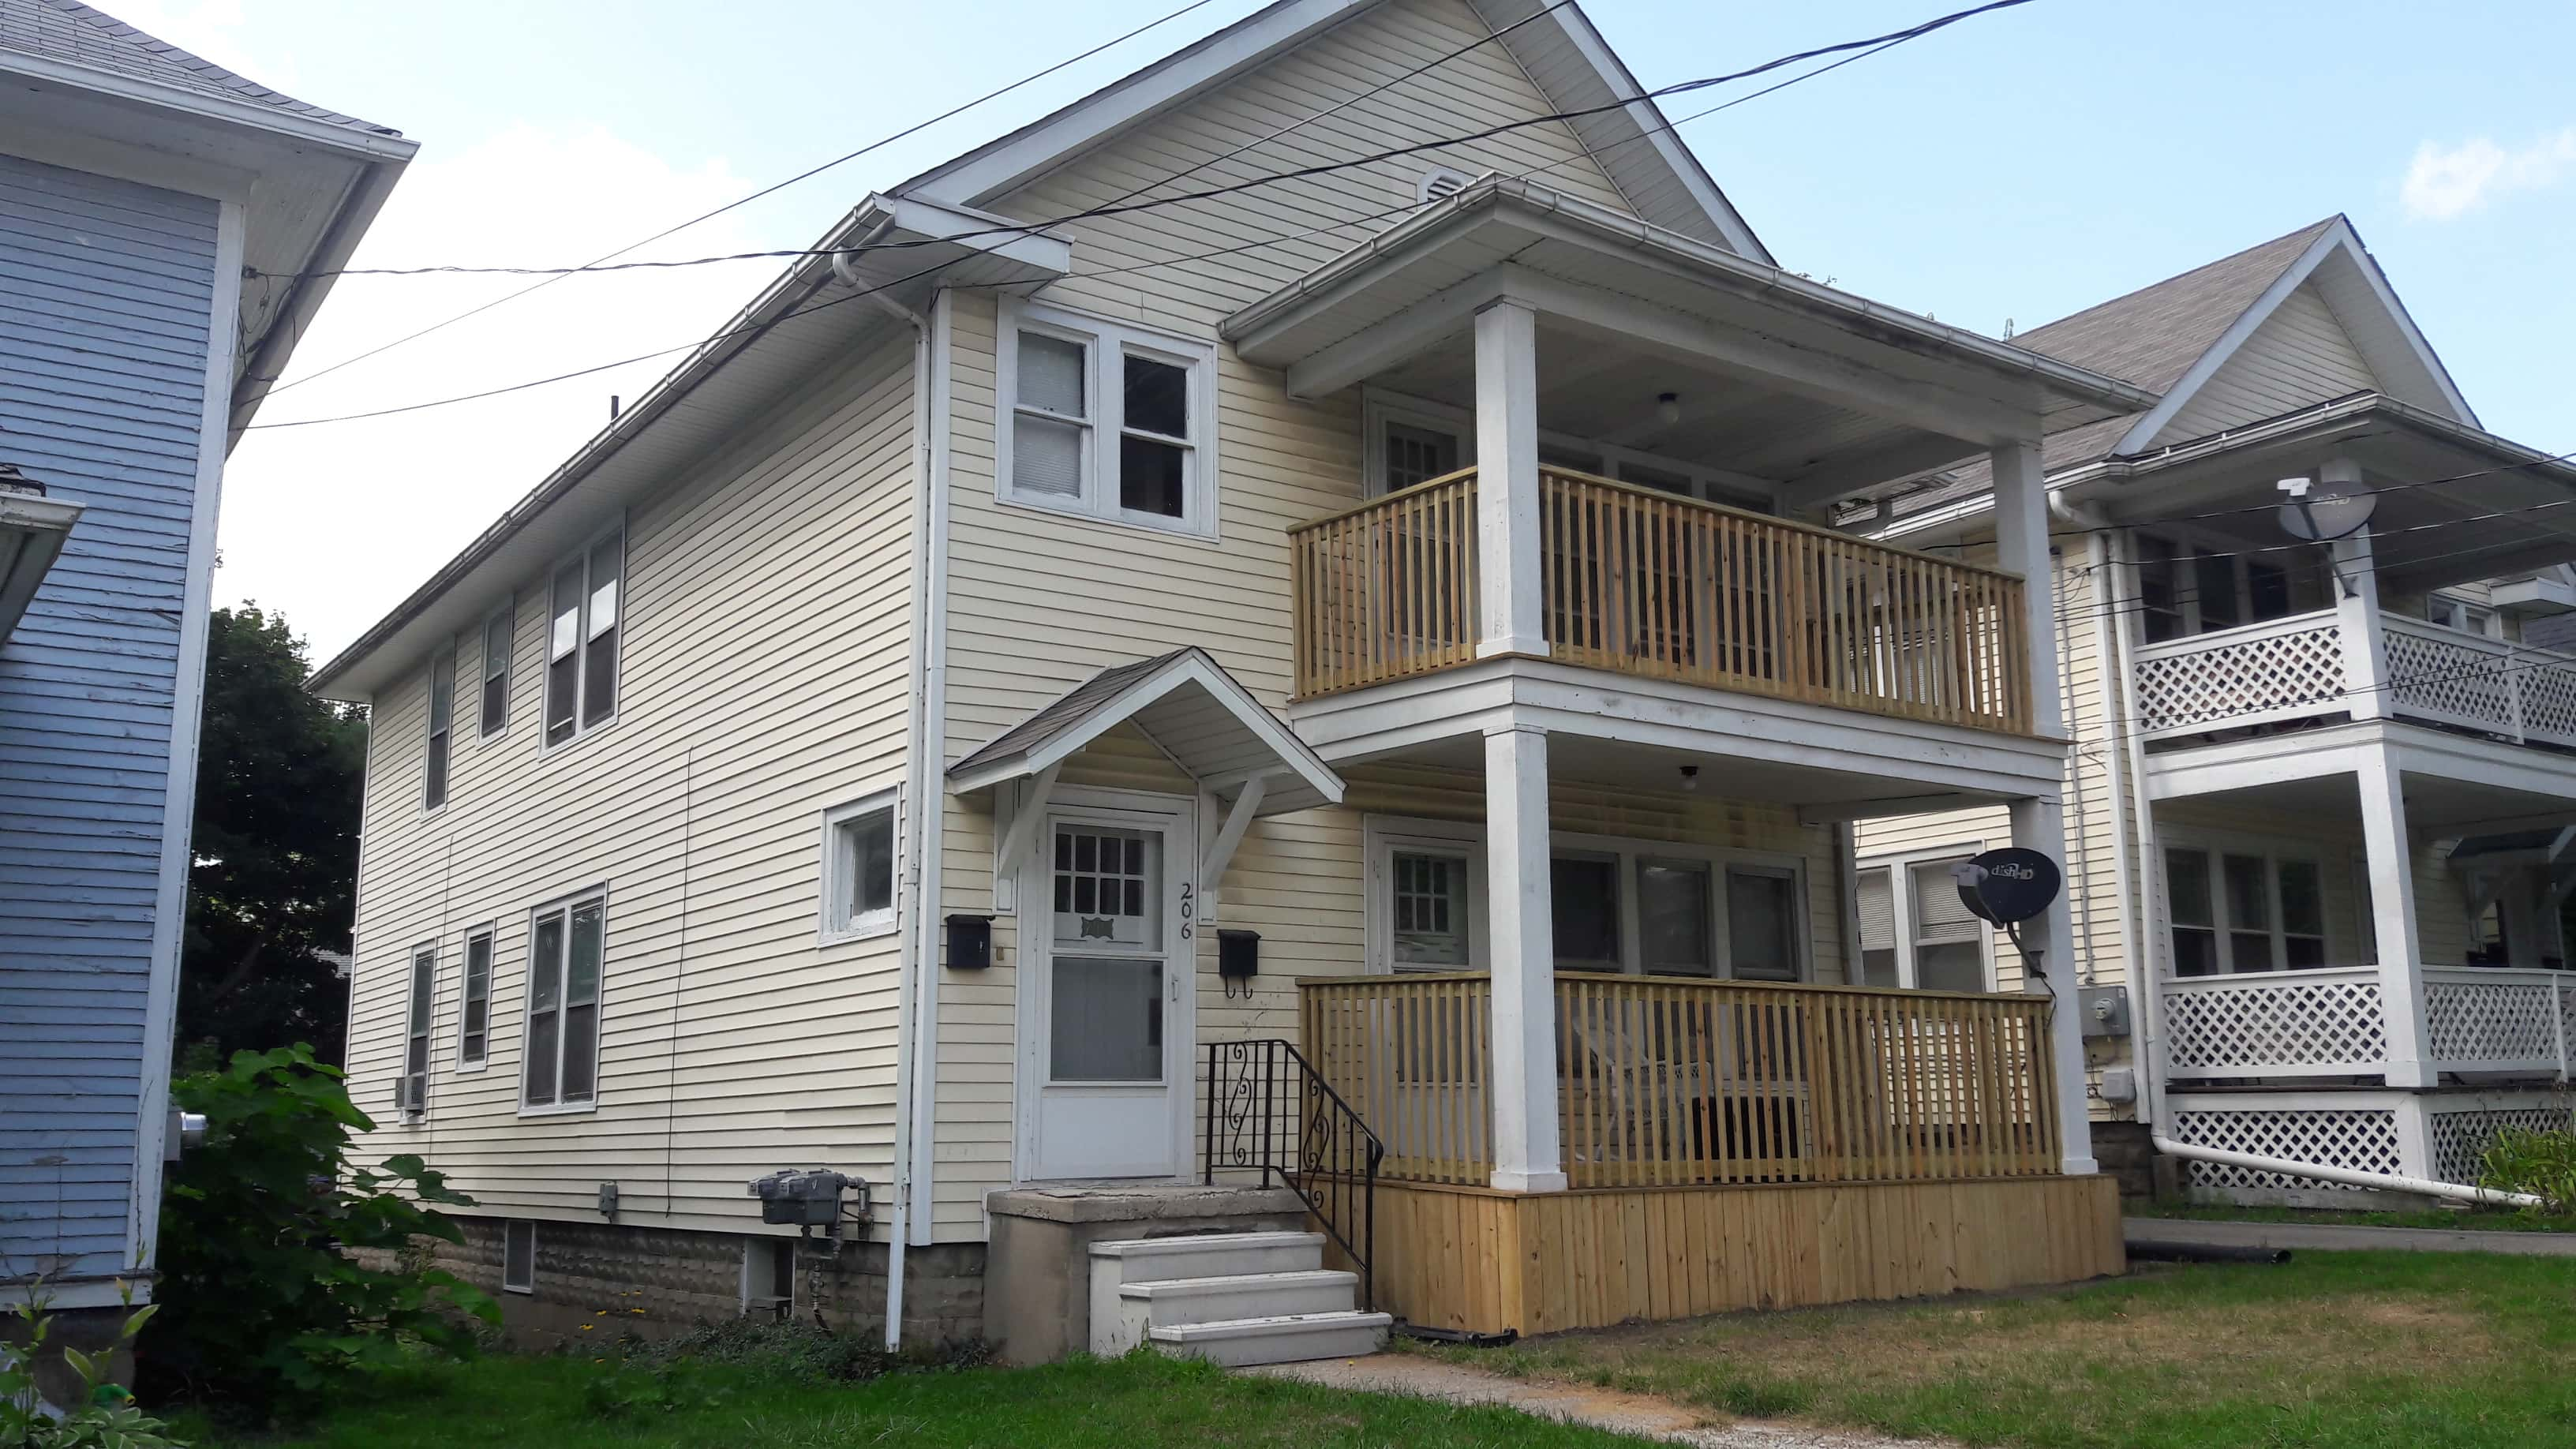 206 S West Ave (Upper)